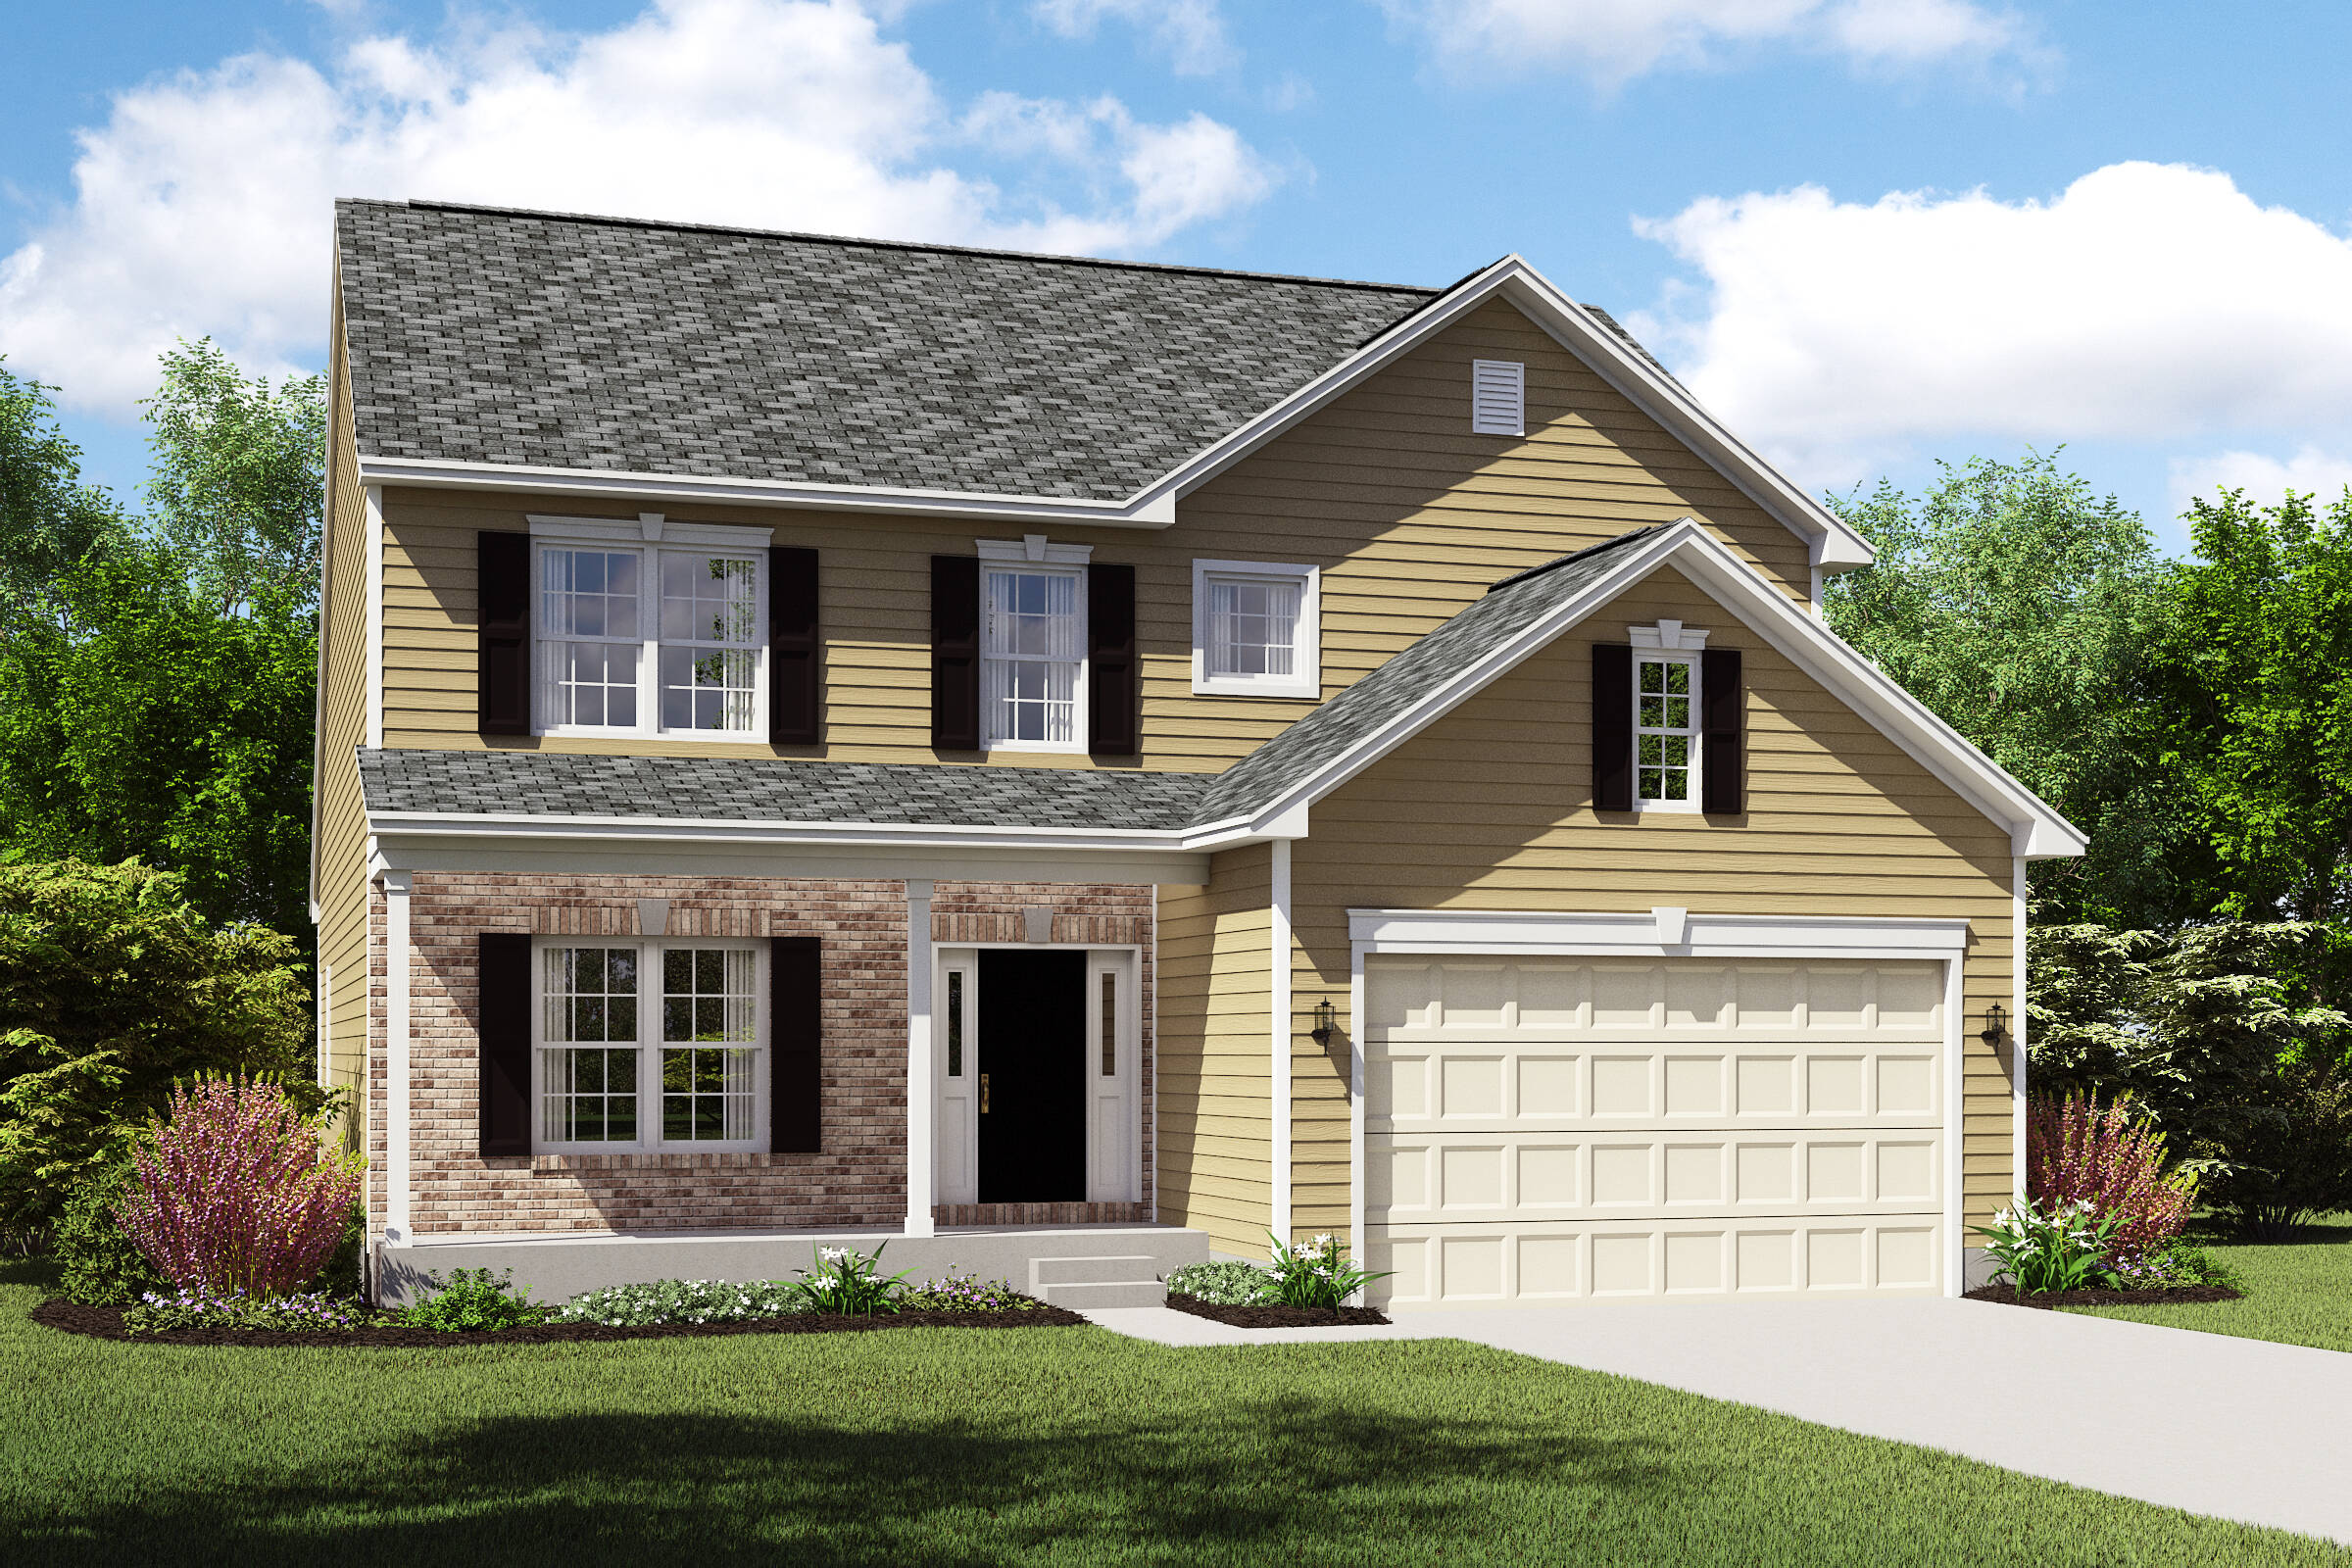 Oakridge-CB-meadow lakes new homes cleveland